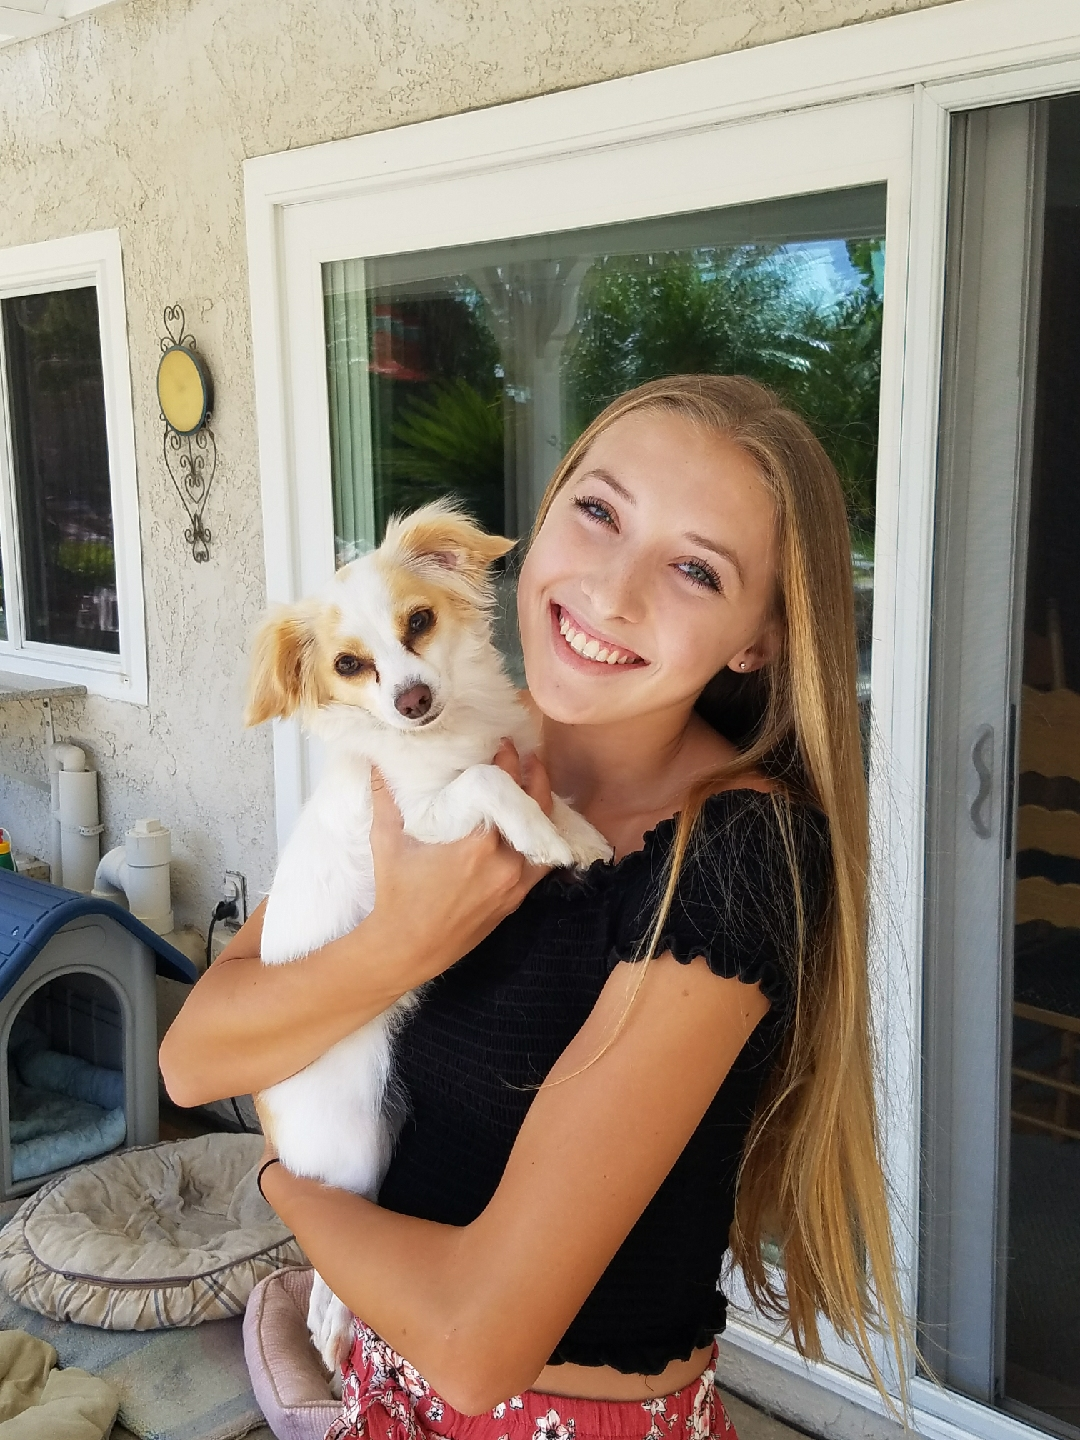 Alyssa lovingly plays with her dog Bailey at her home.